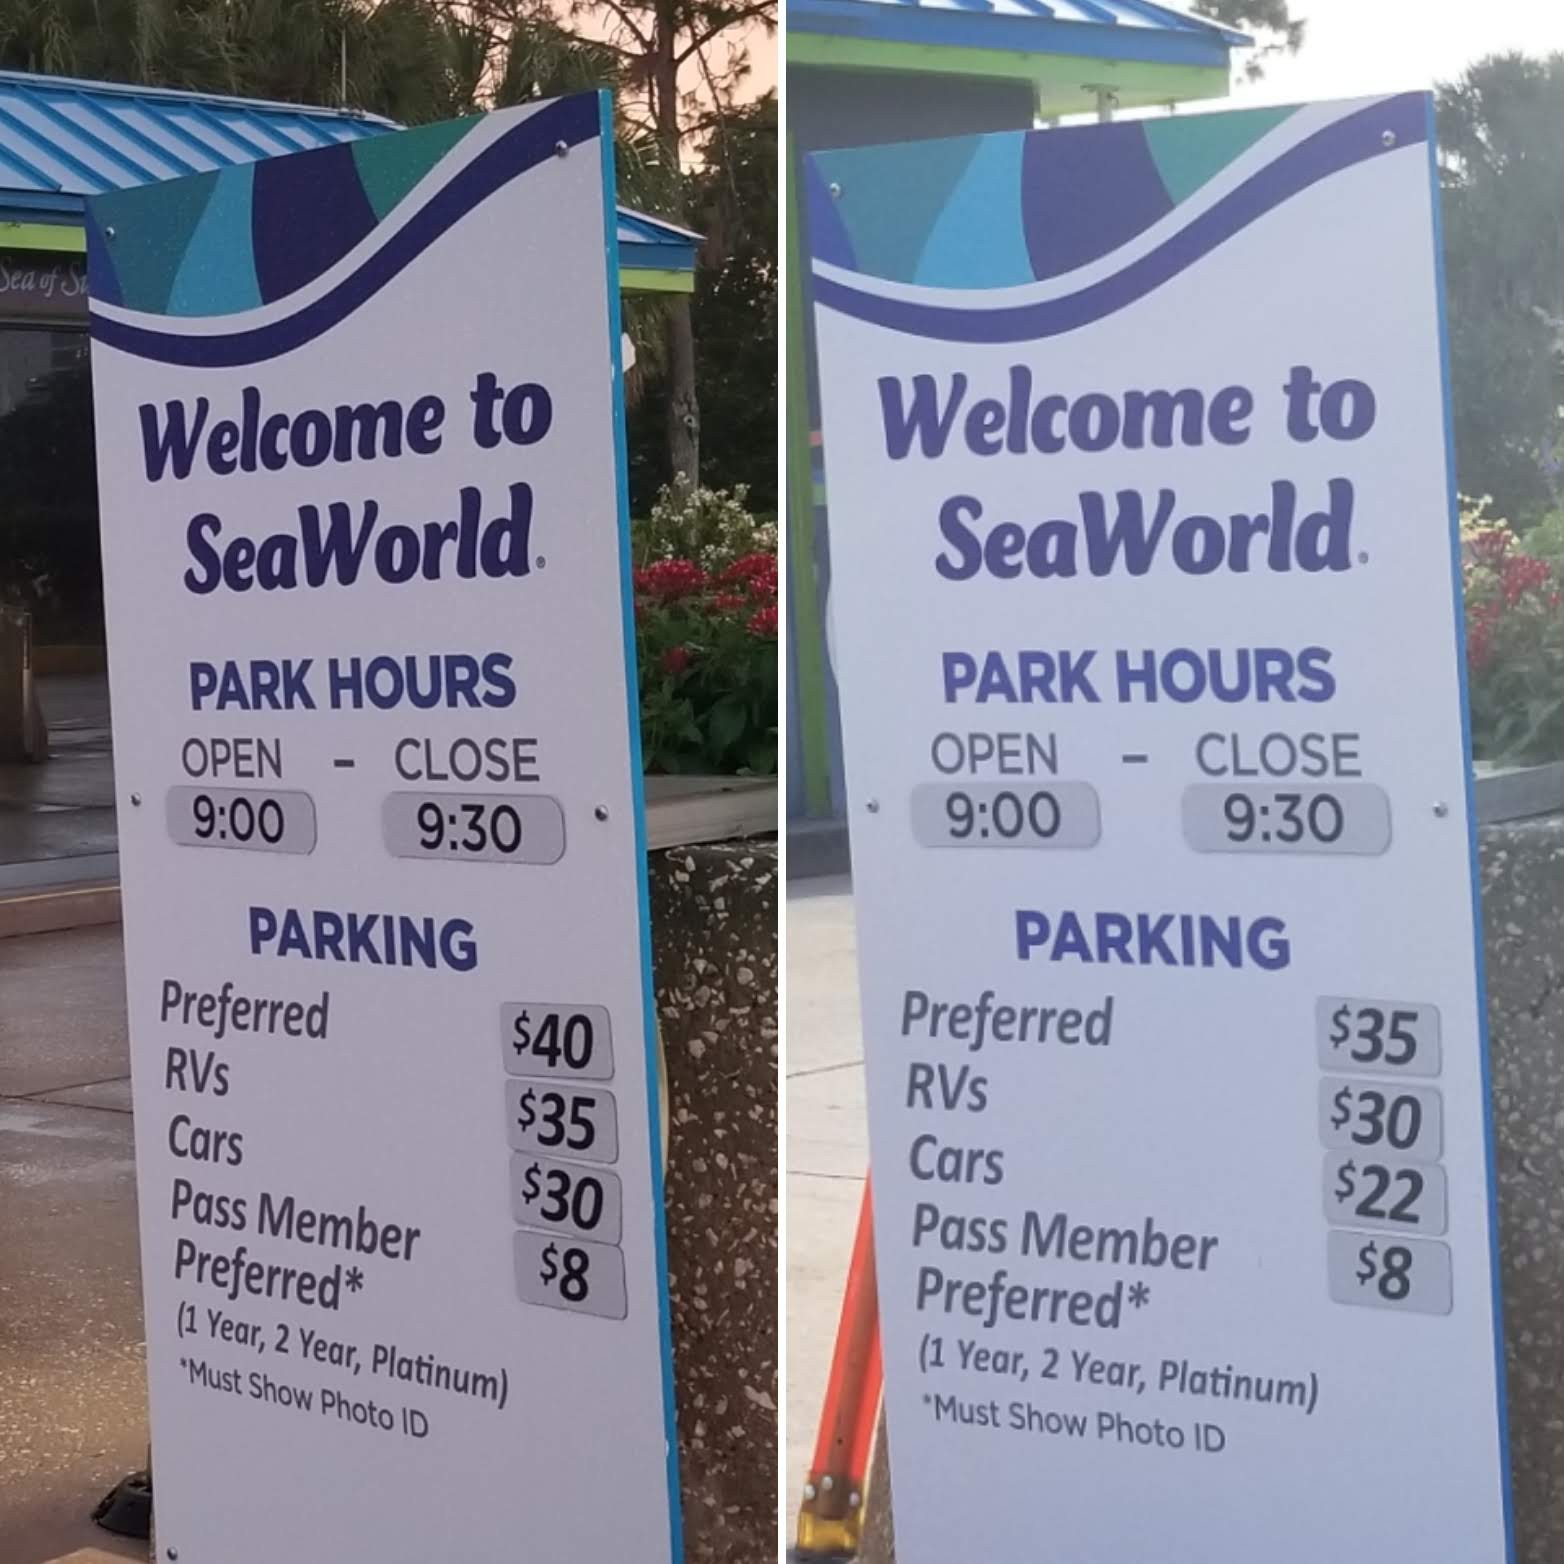 SeaWorld's new parking prices make absolutely no sense | Blogs